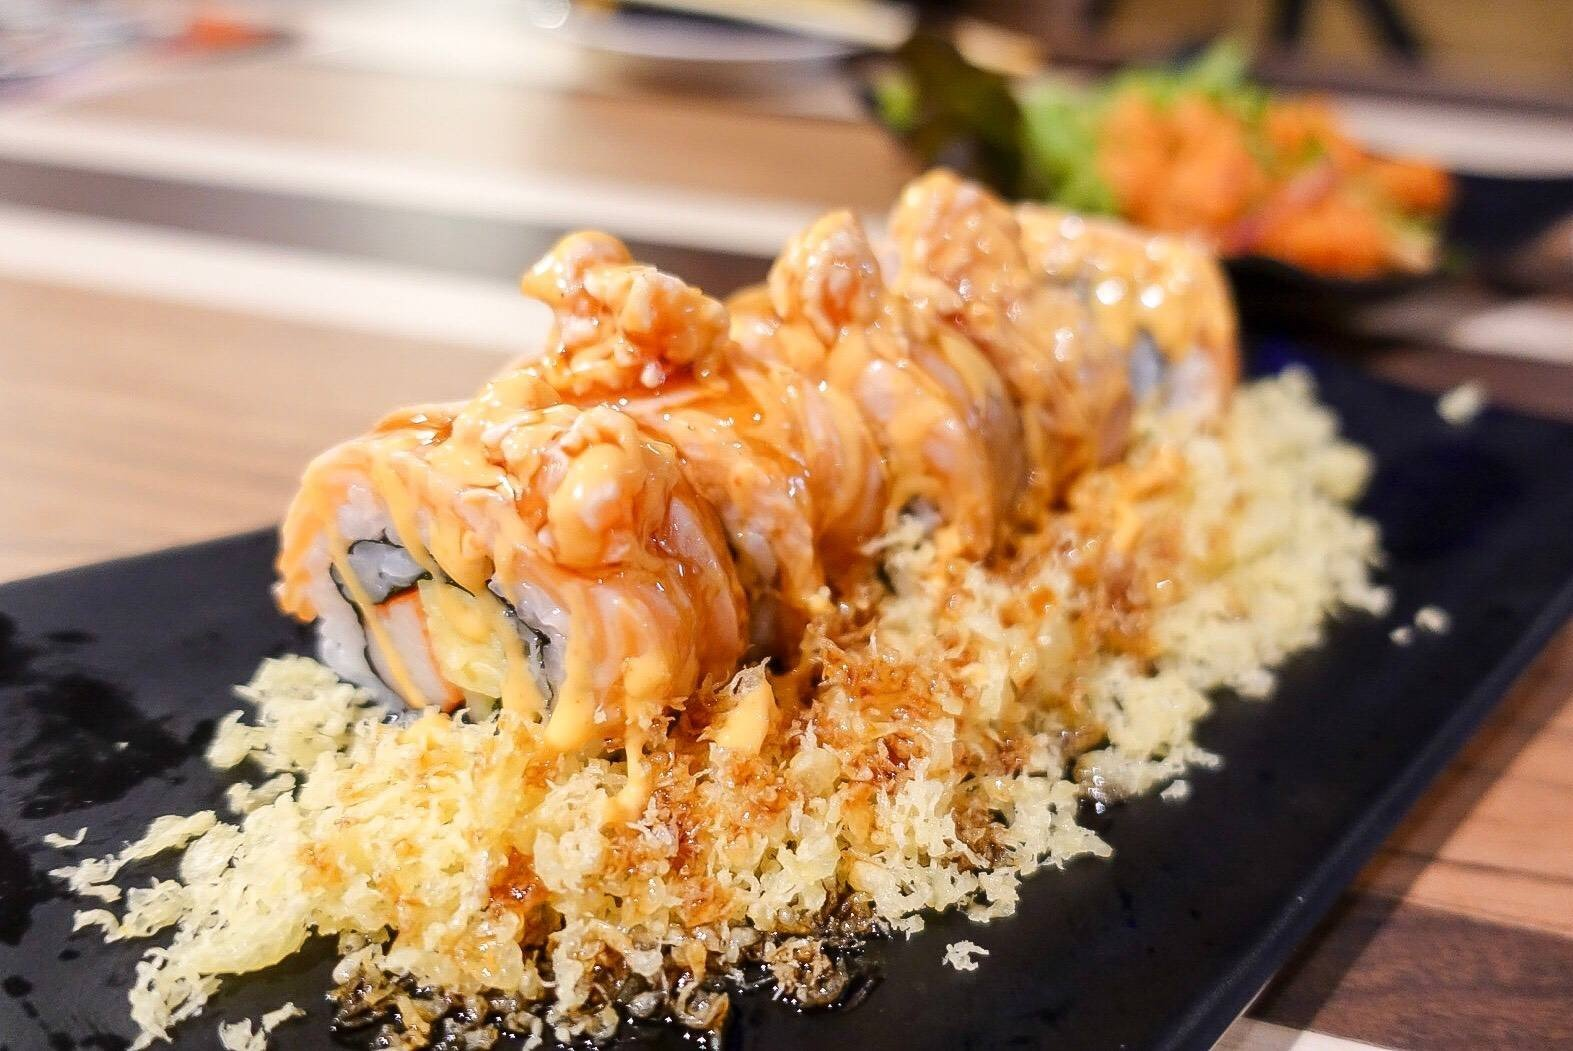 Salmon Spicy Roll (149THB)